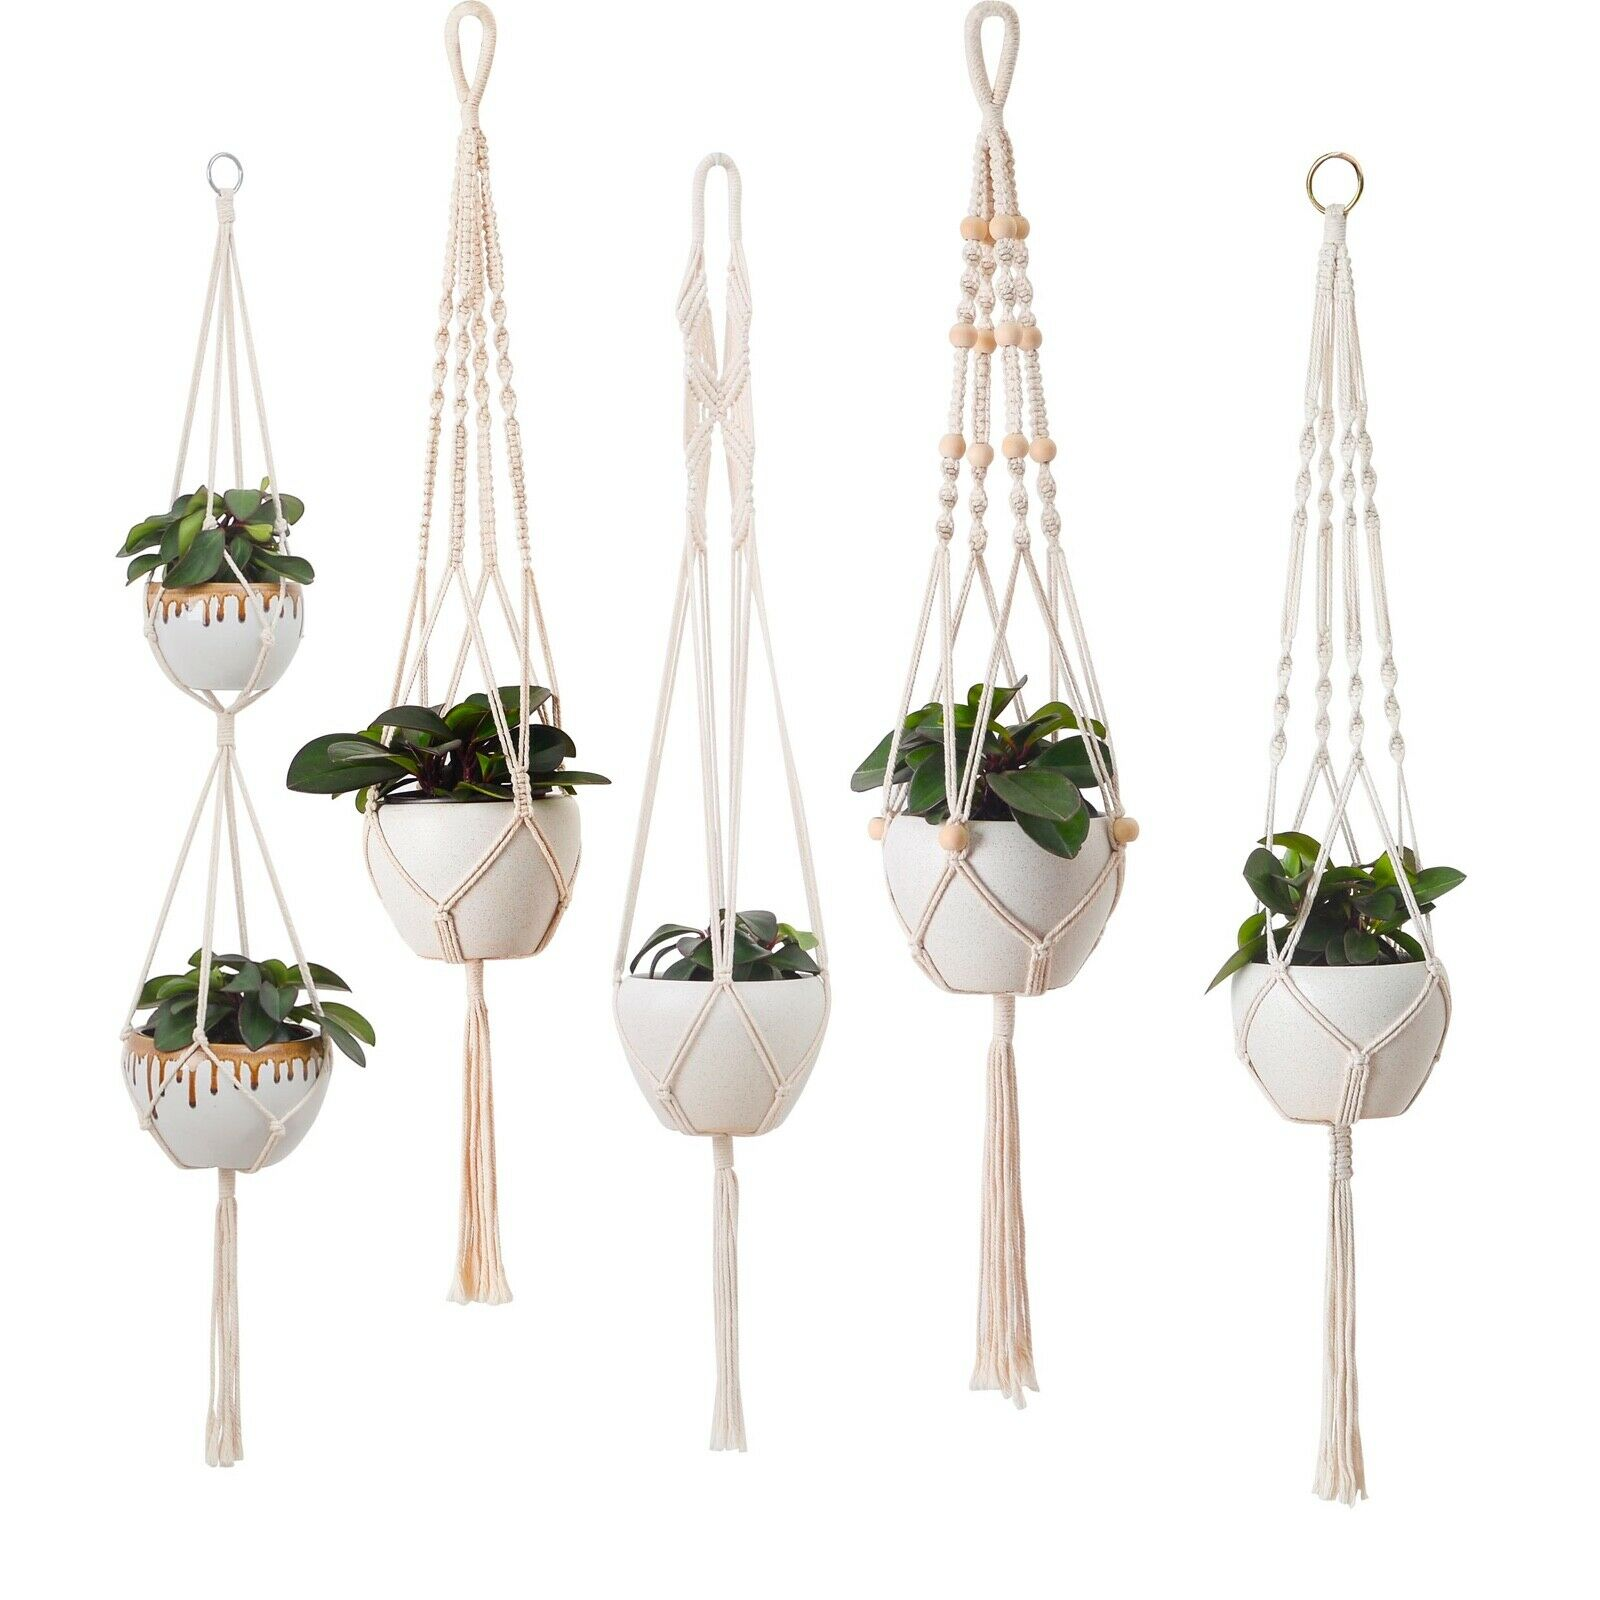 5 Piece Set Macrame Plant Hangers Macrame Plant Hanger With Hooks Home & Garden